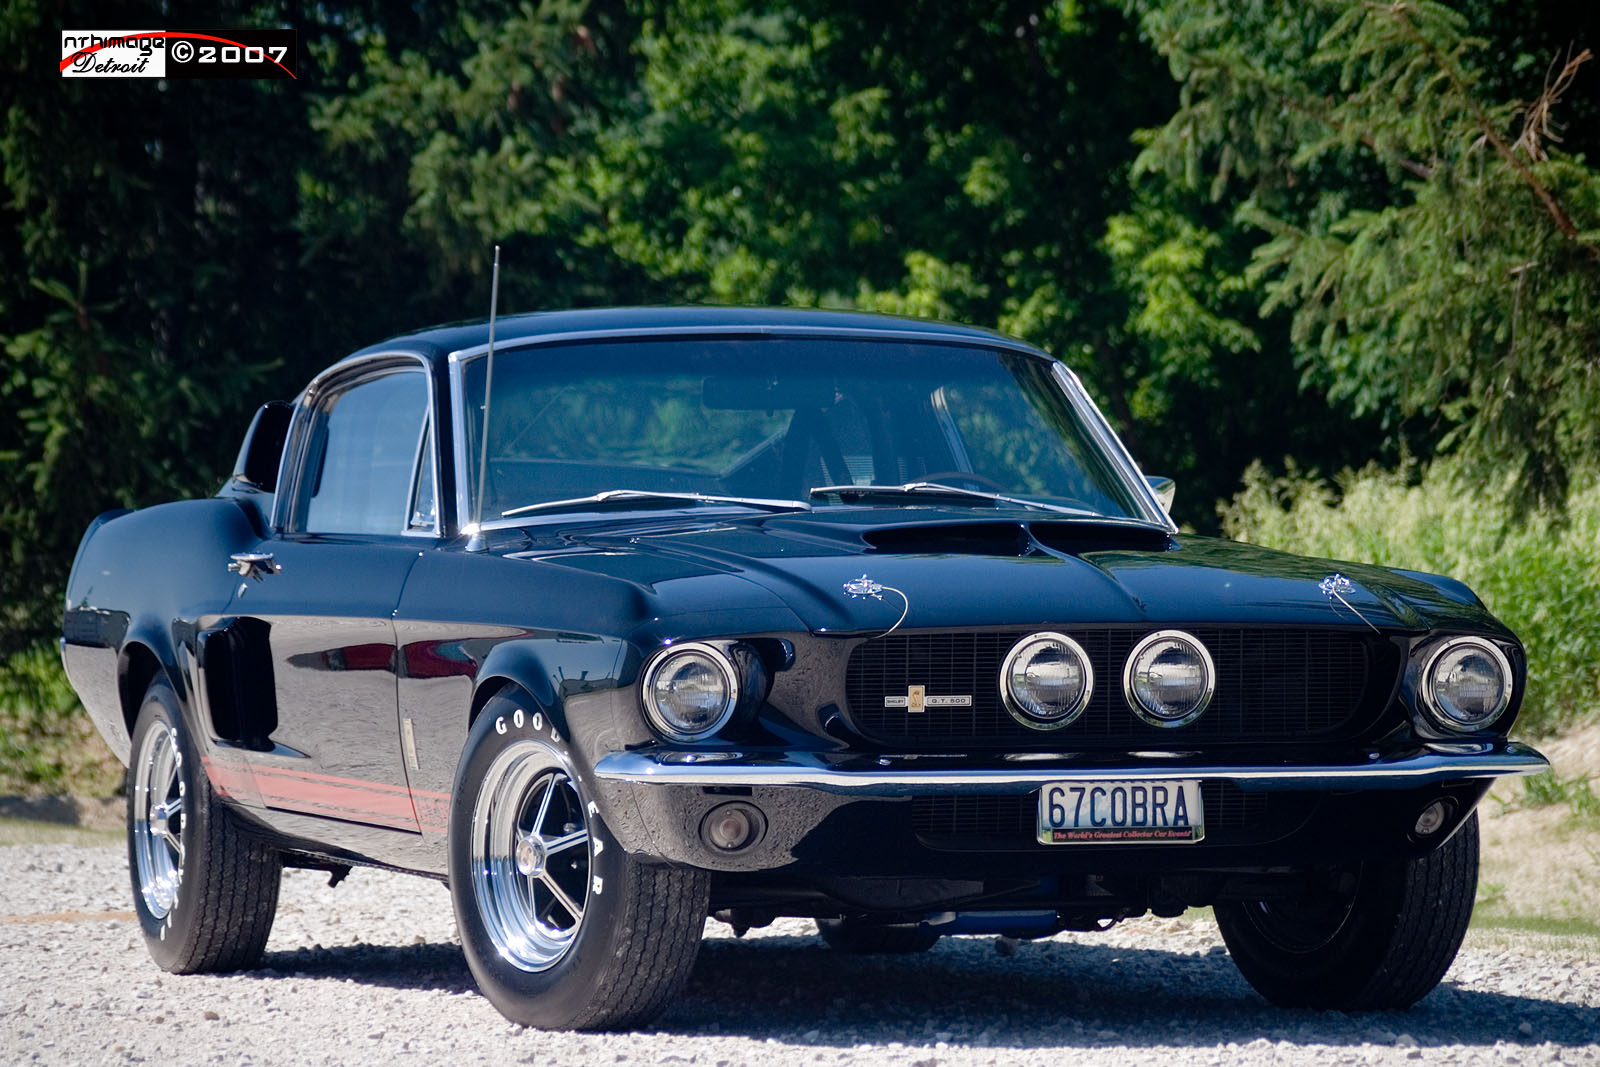 Cl Mustang >> 3DTuning of Mustang Shelby GT500 Coupe 1967 3DTuning.com ...